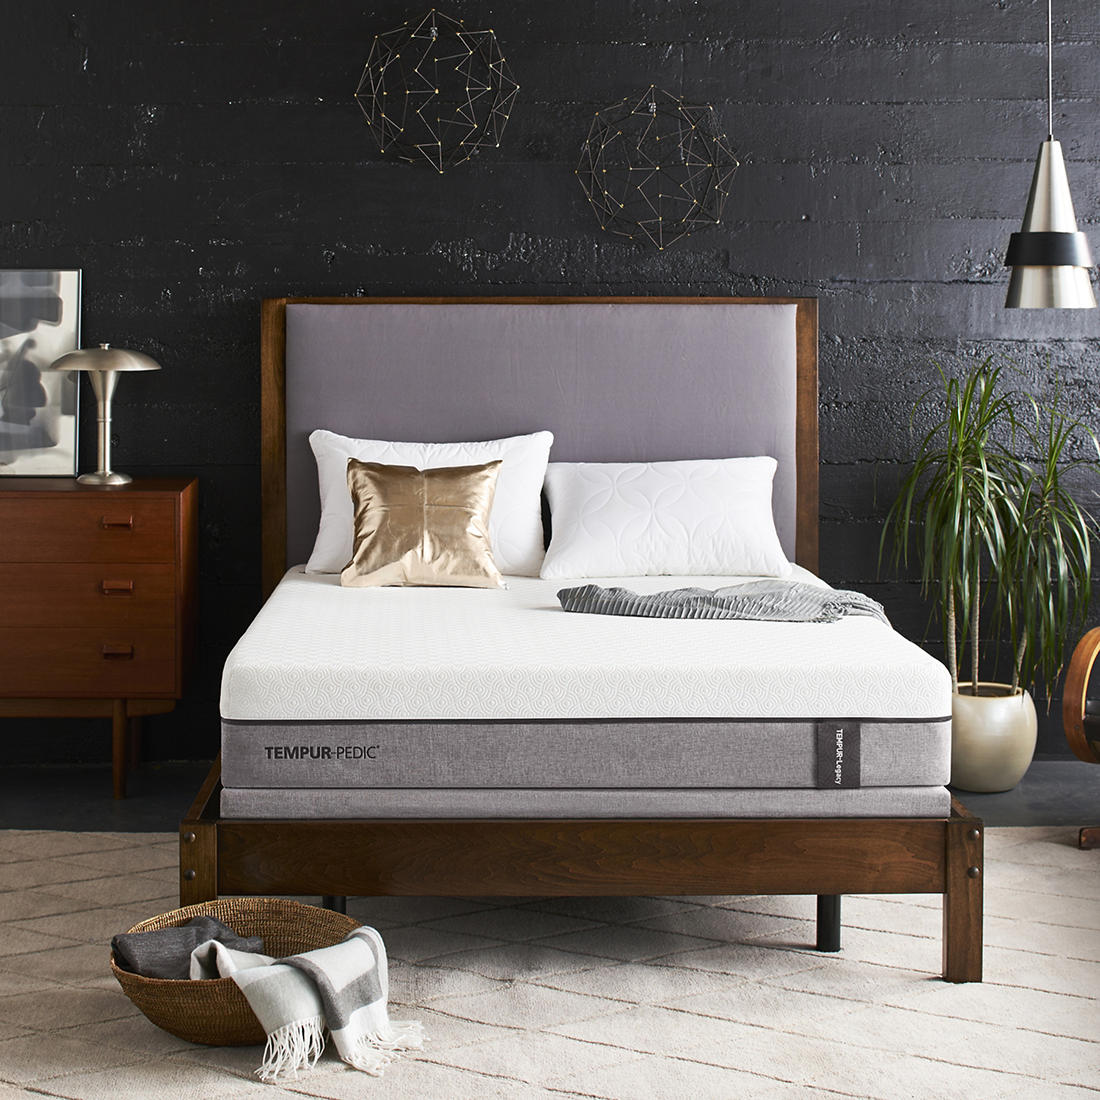 Amazing Tempurpedic Tempur Legacy King Size Mattress Ocoug Best Dining Table And Chair Ideas Images Ocougorg